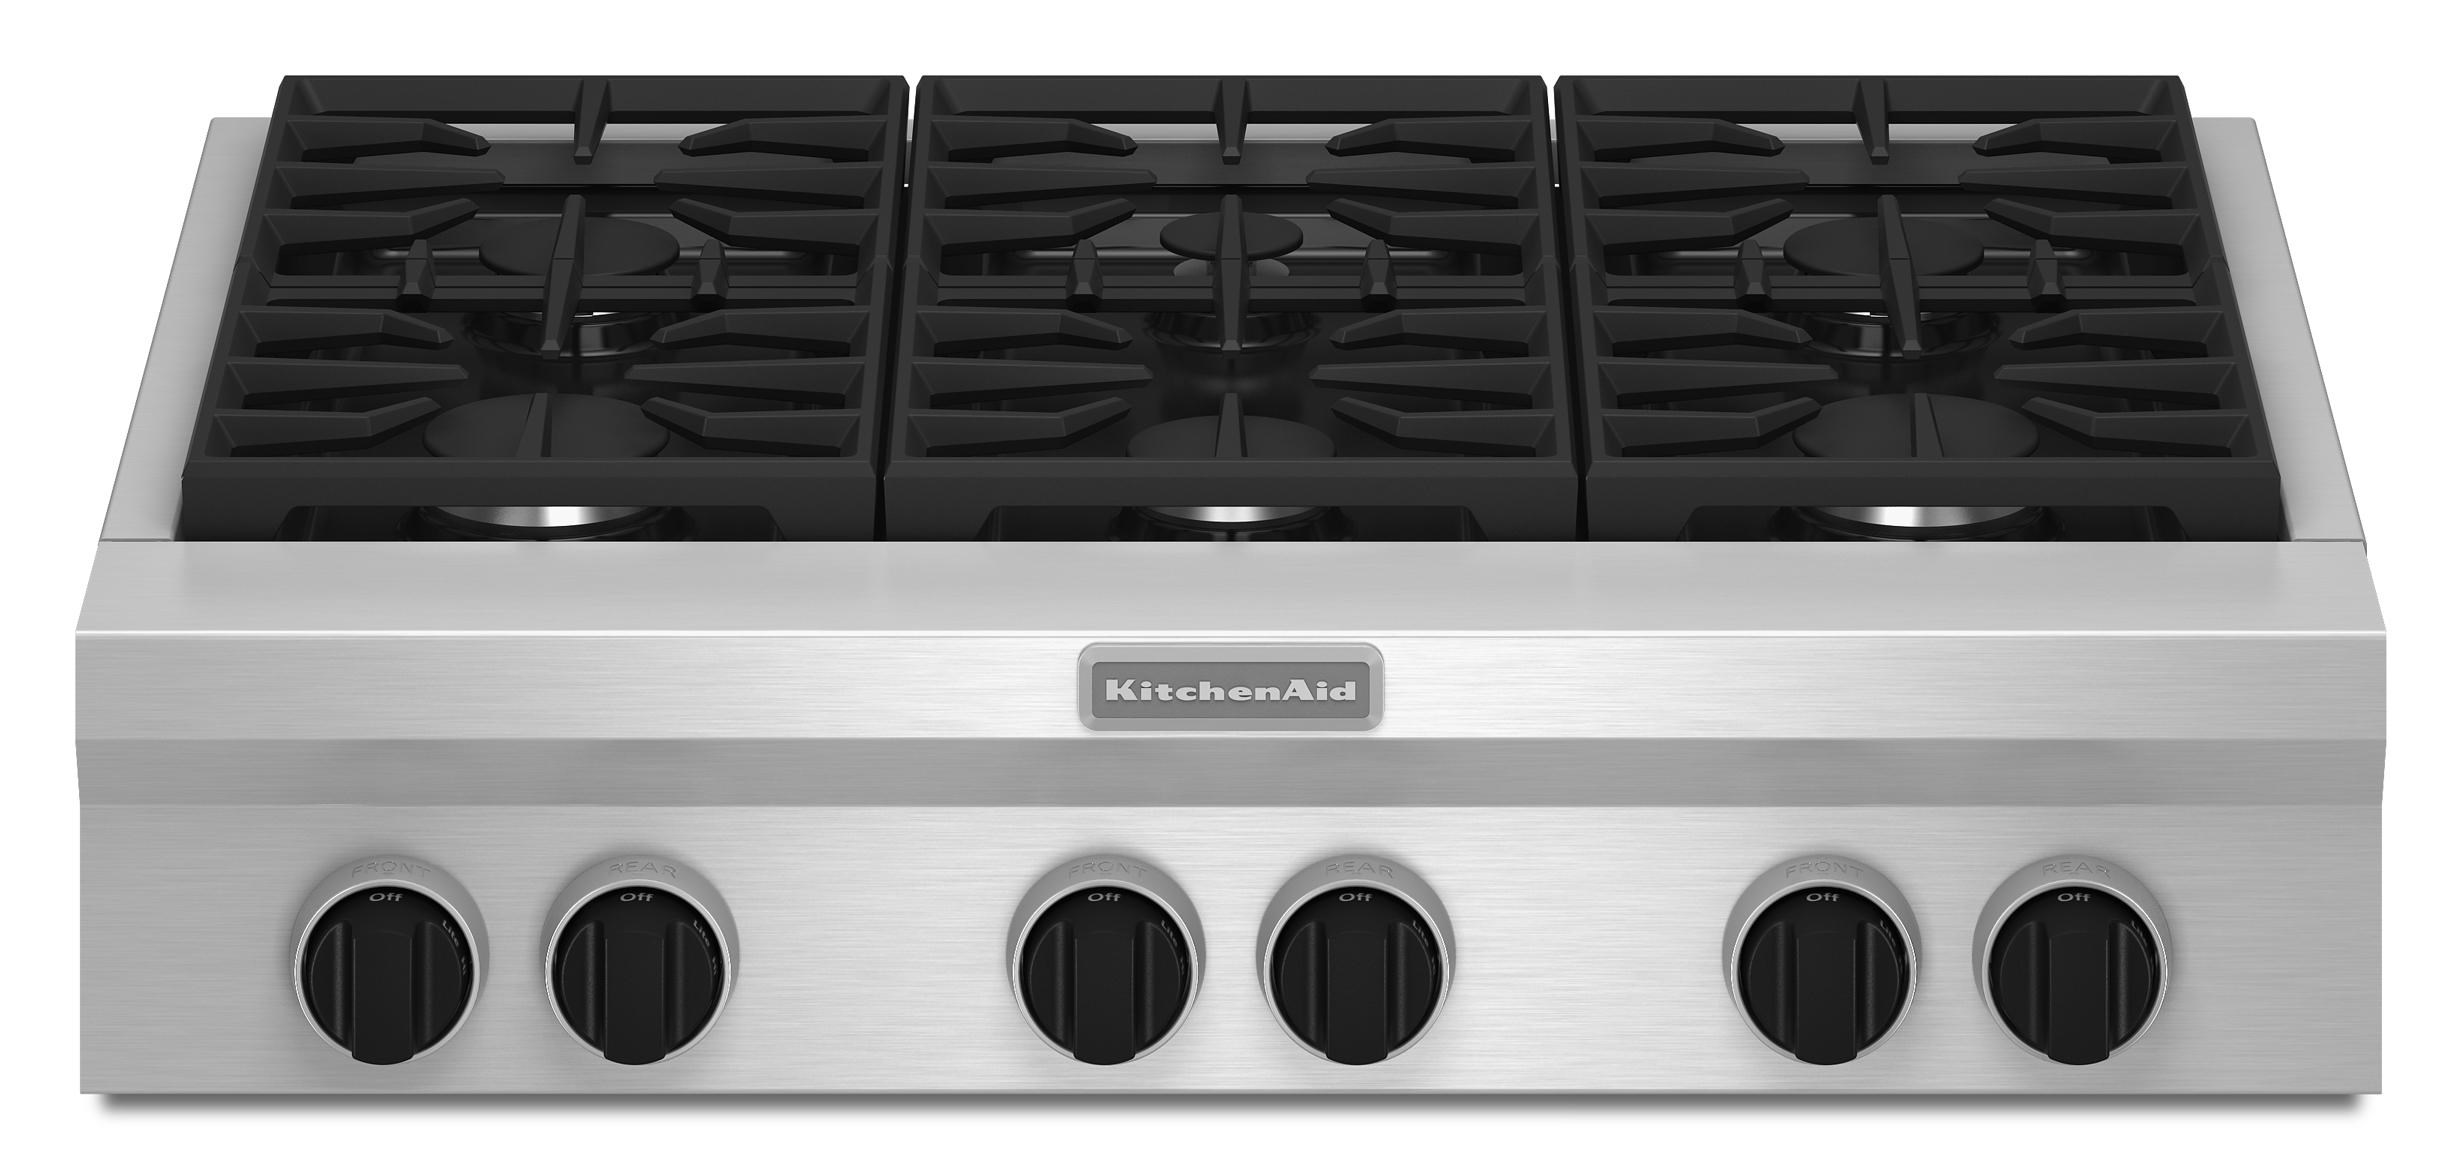 Merveilleux KitchenAid Gas Cooktops36 ...